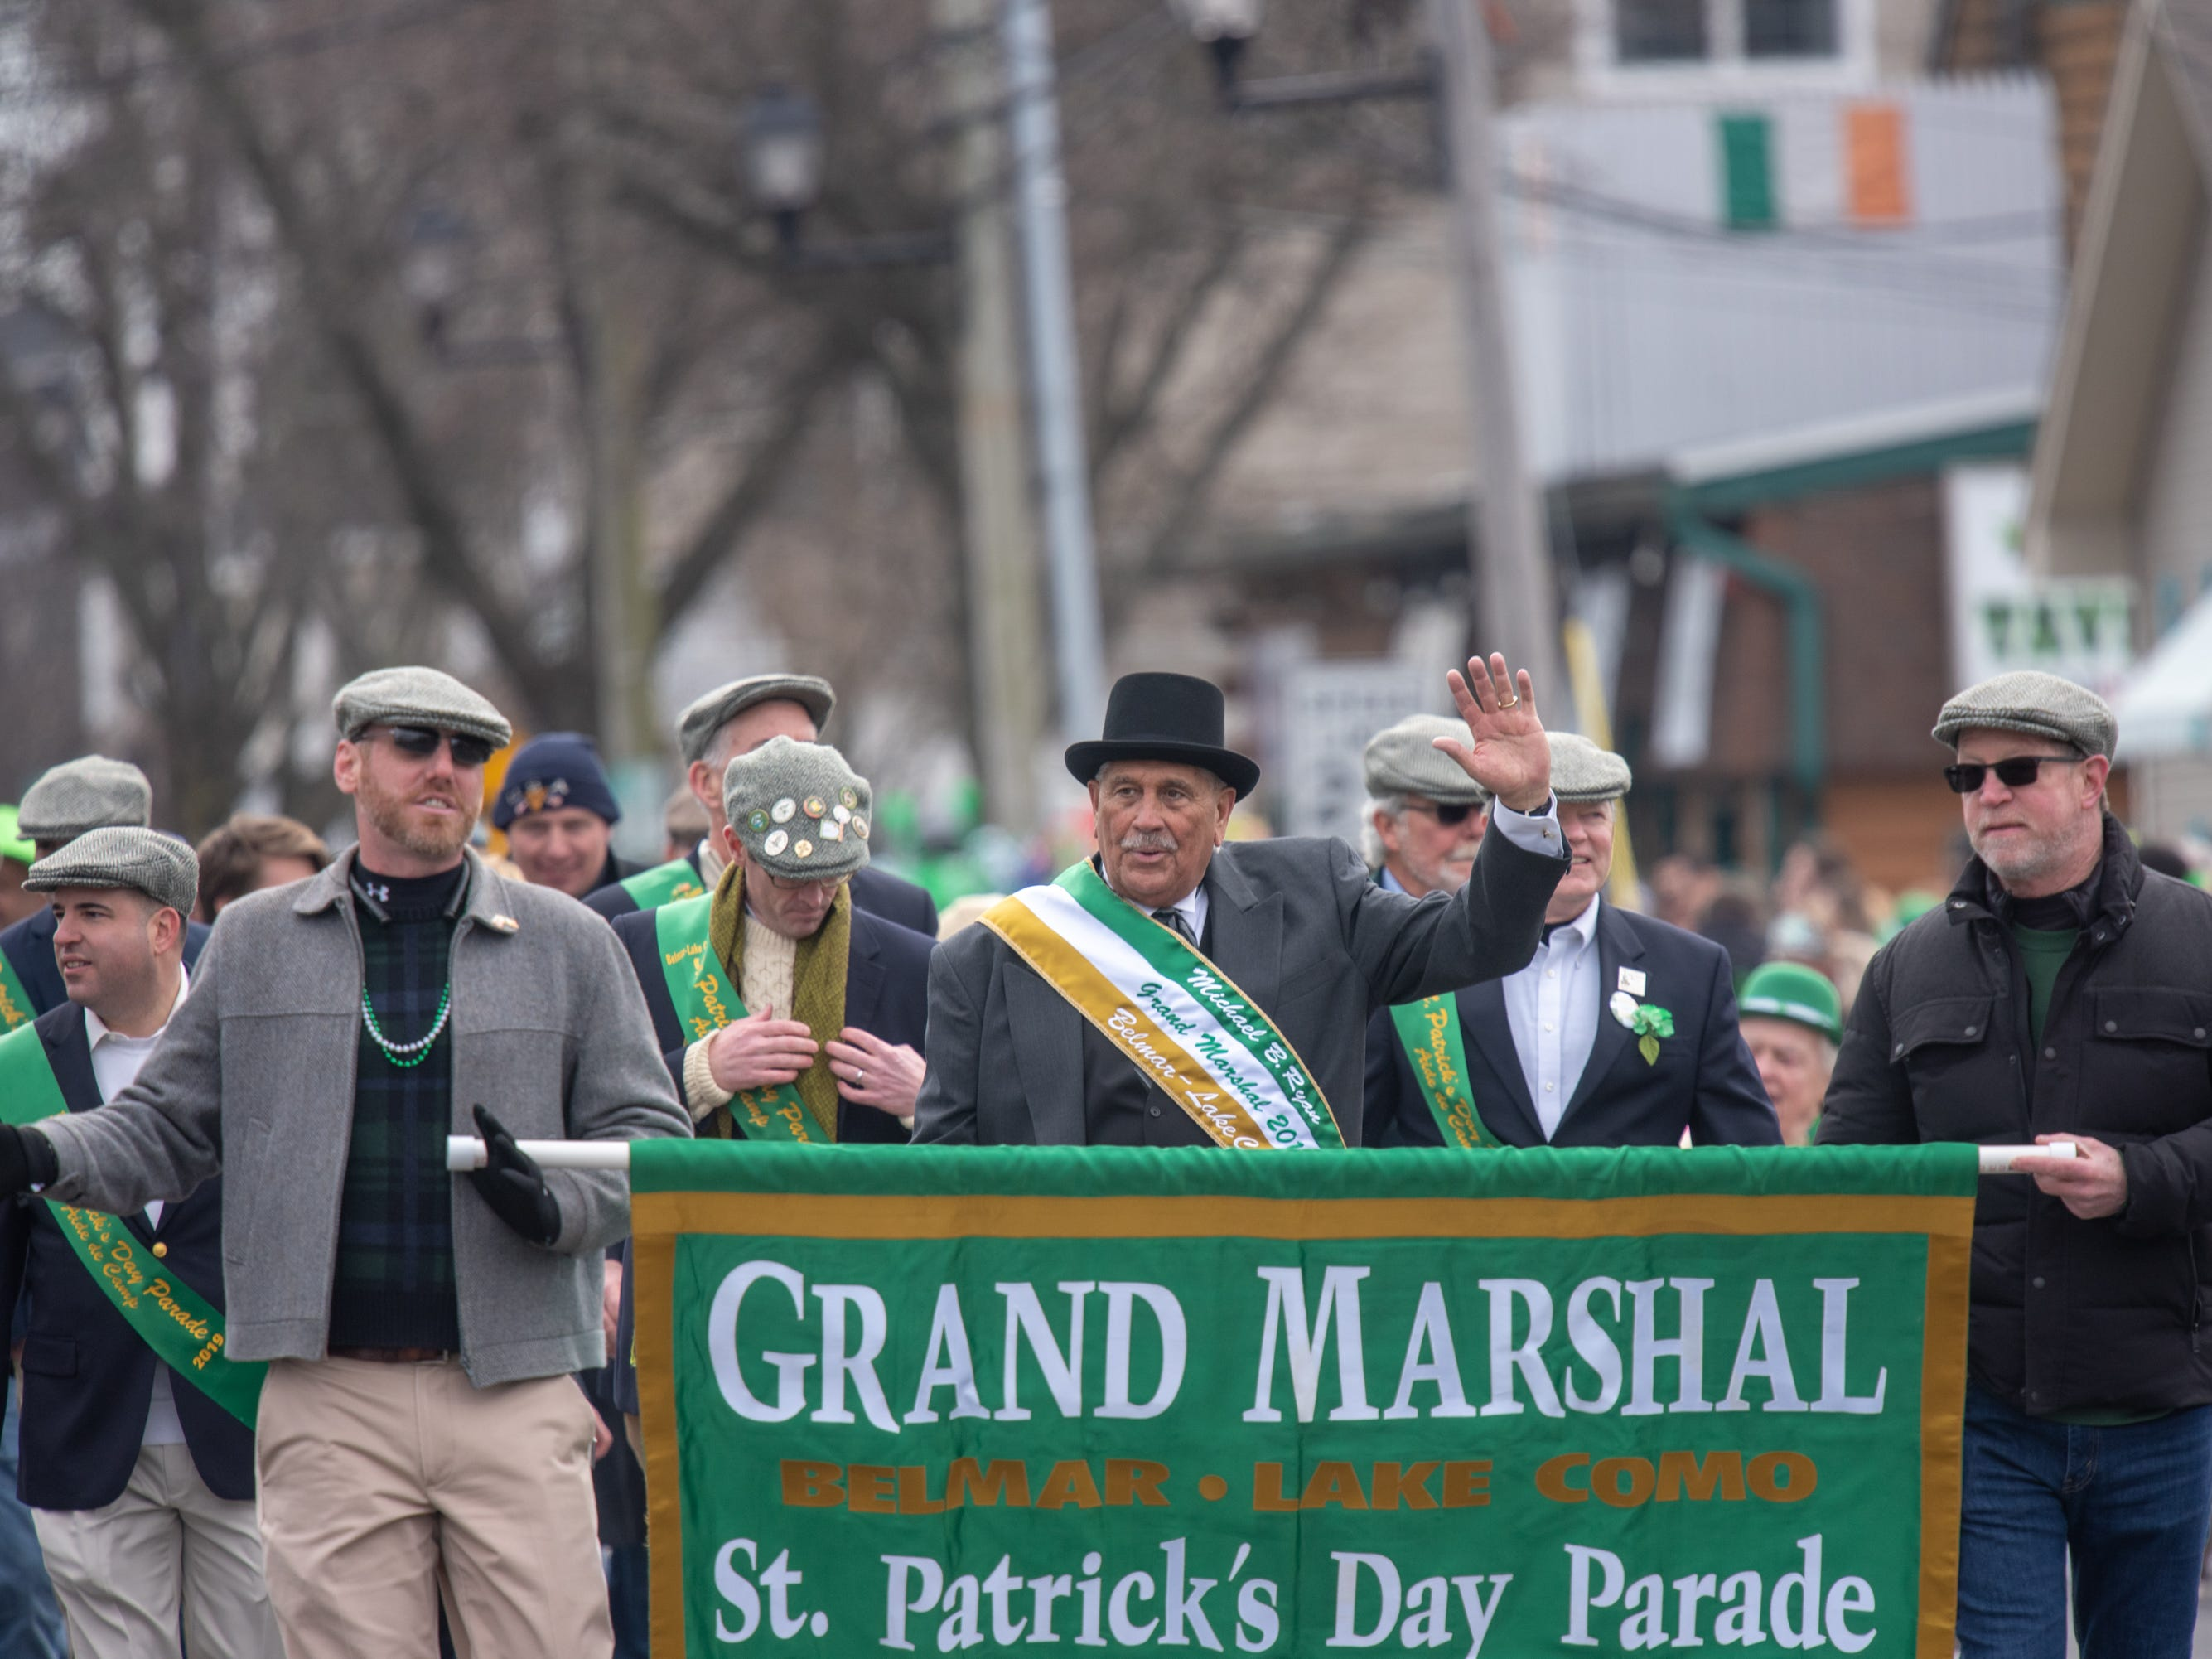 Grand Marshall Michael B. Ryan waves to the crowd. The 46th annual Belmar/Lake Como St. Patrick's Day Parade was held in Belmar on March 3, 2019.